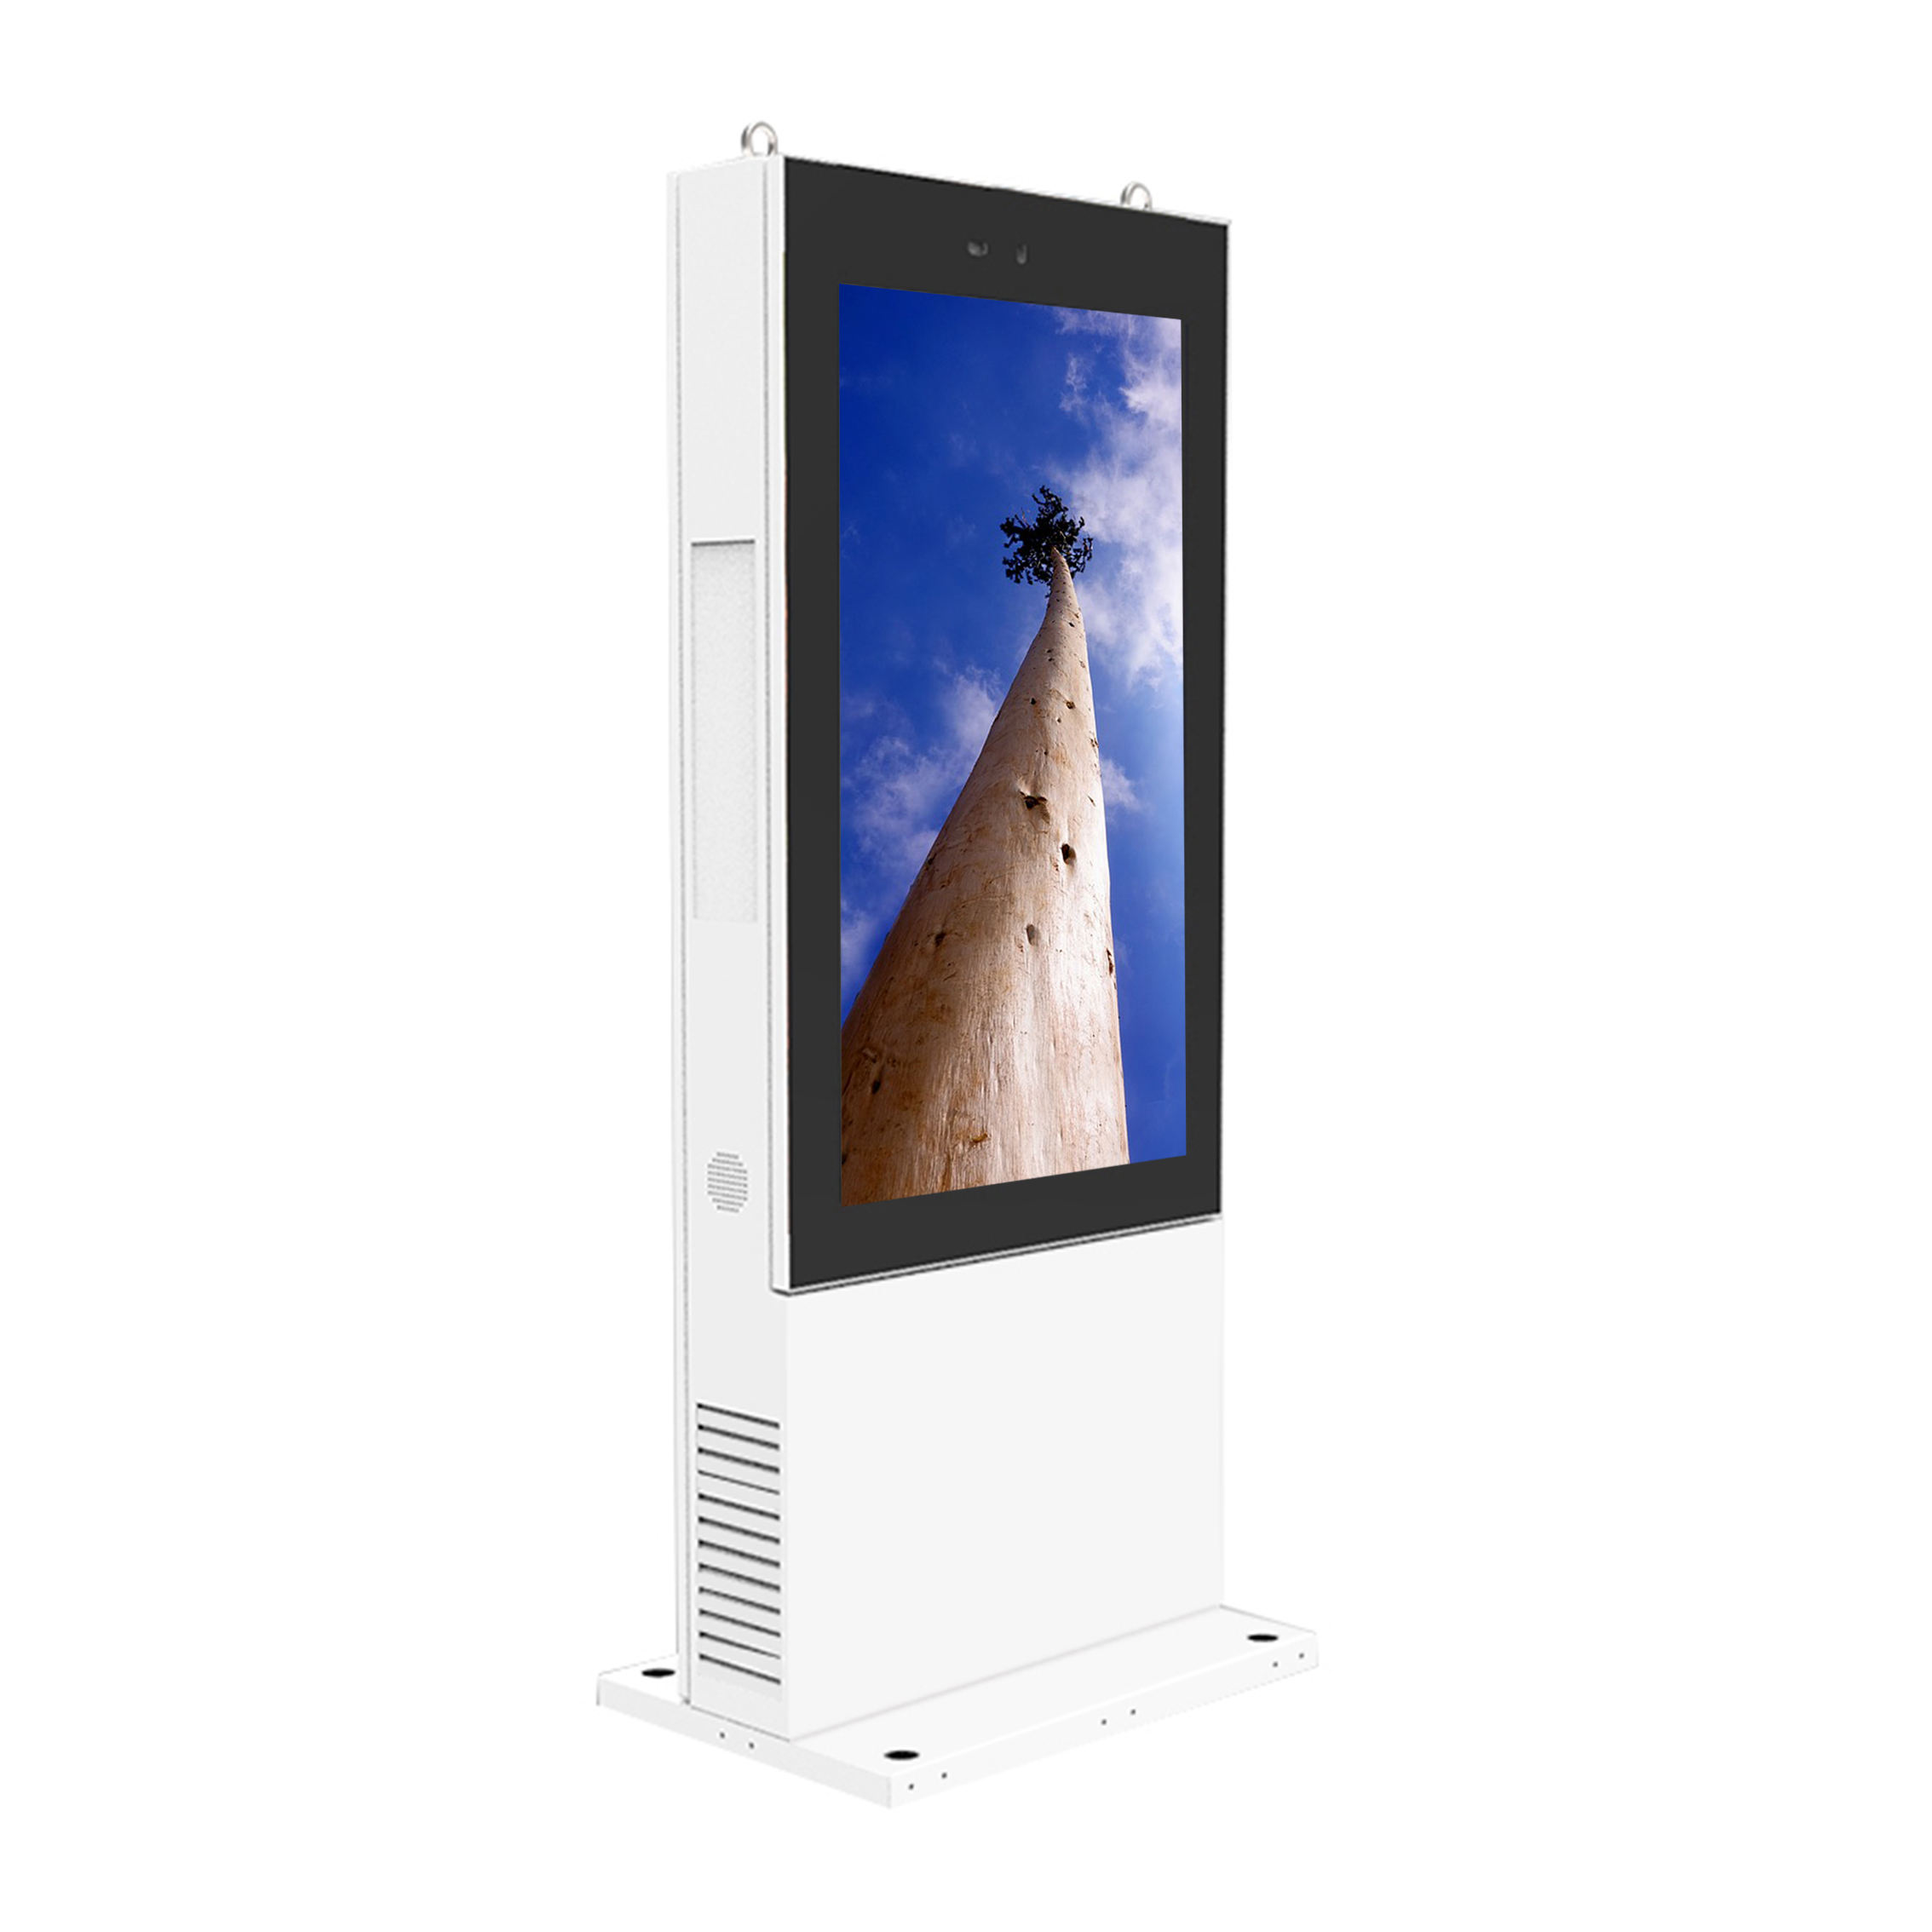 Outdoor 43 pollici Stand-Alone Display <span class=keywords><strong>LCD</strong></span> Digital Signage Chiosco Totem IP65 Impermeabile Dusproof